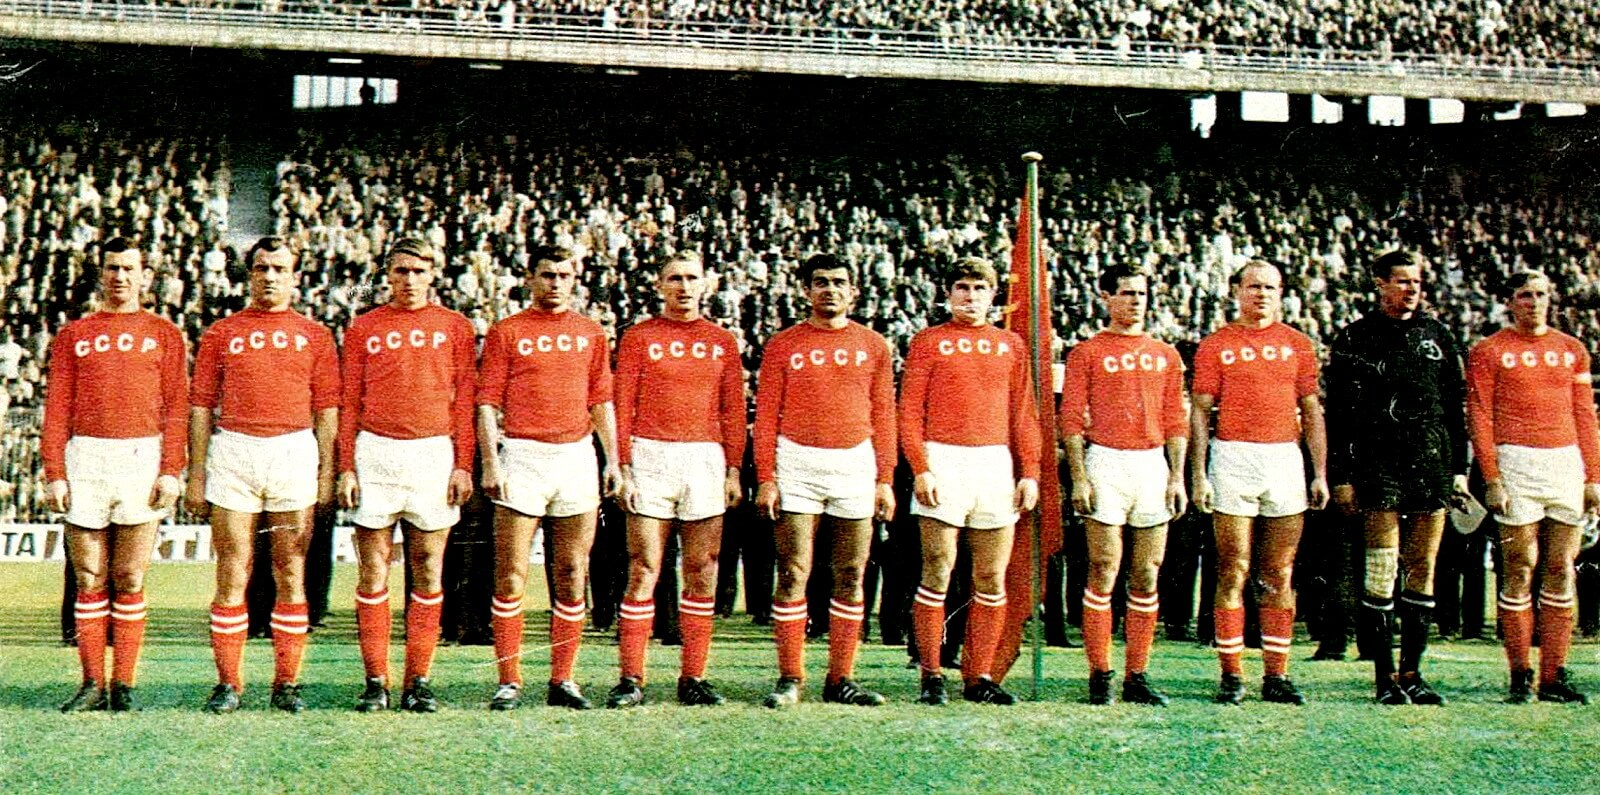 Maillot CCCP 1966